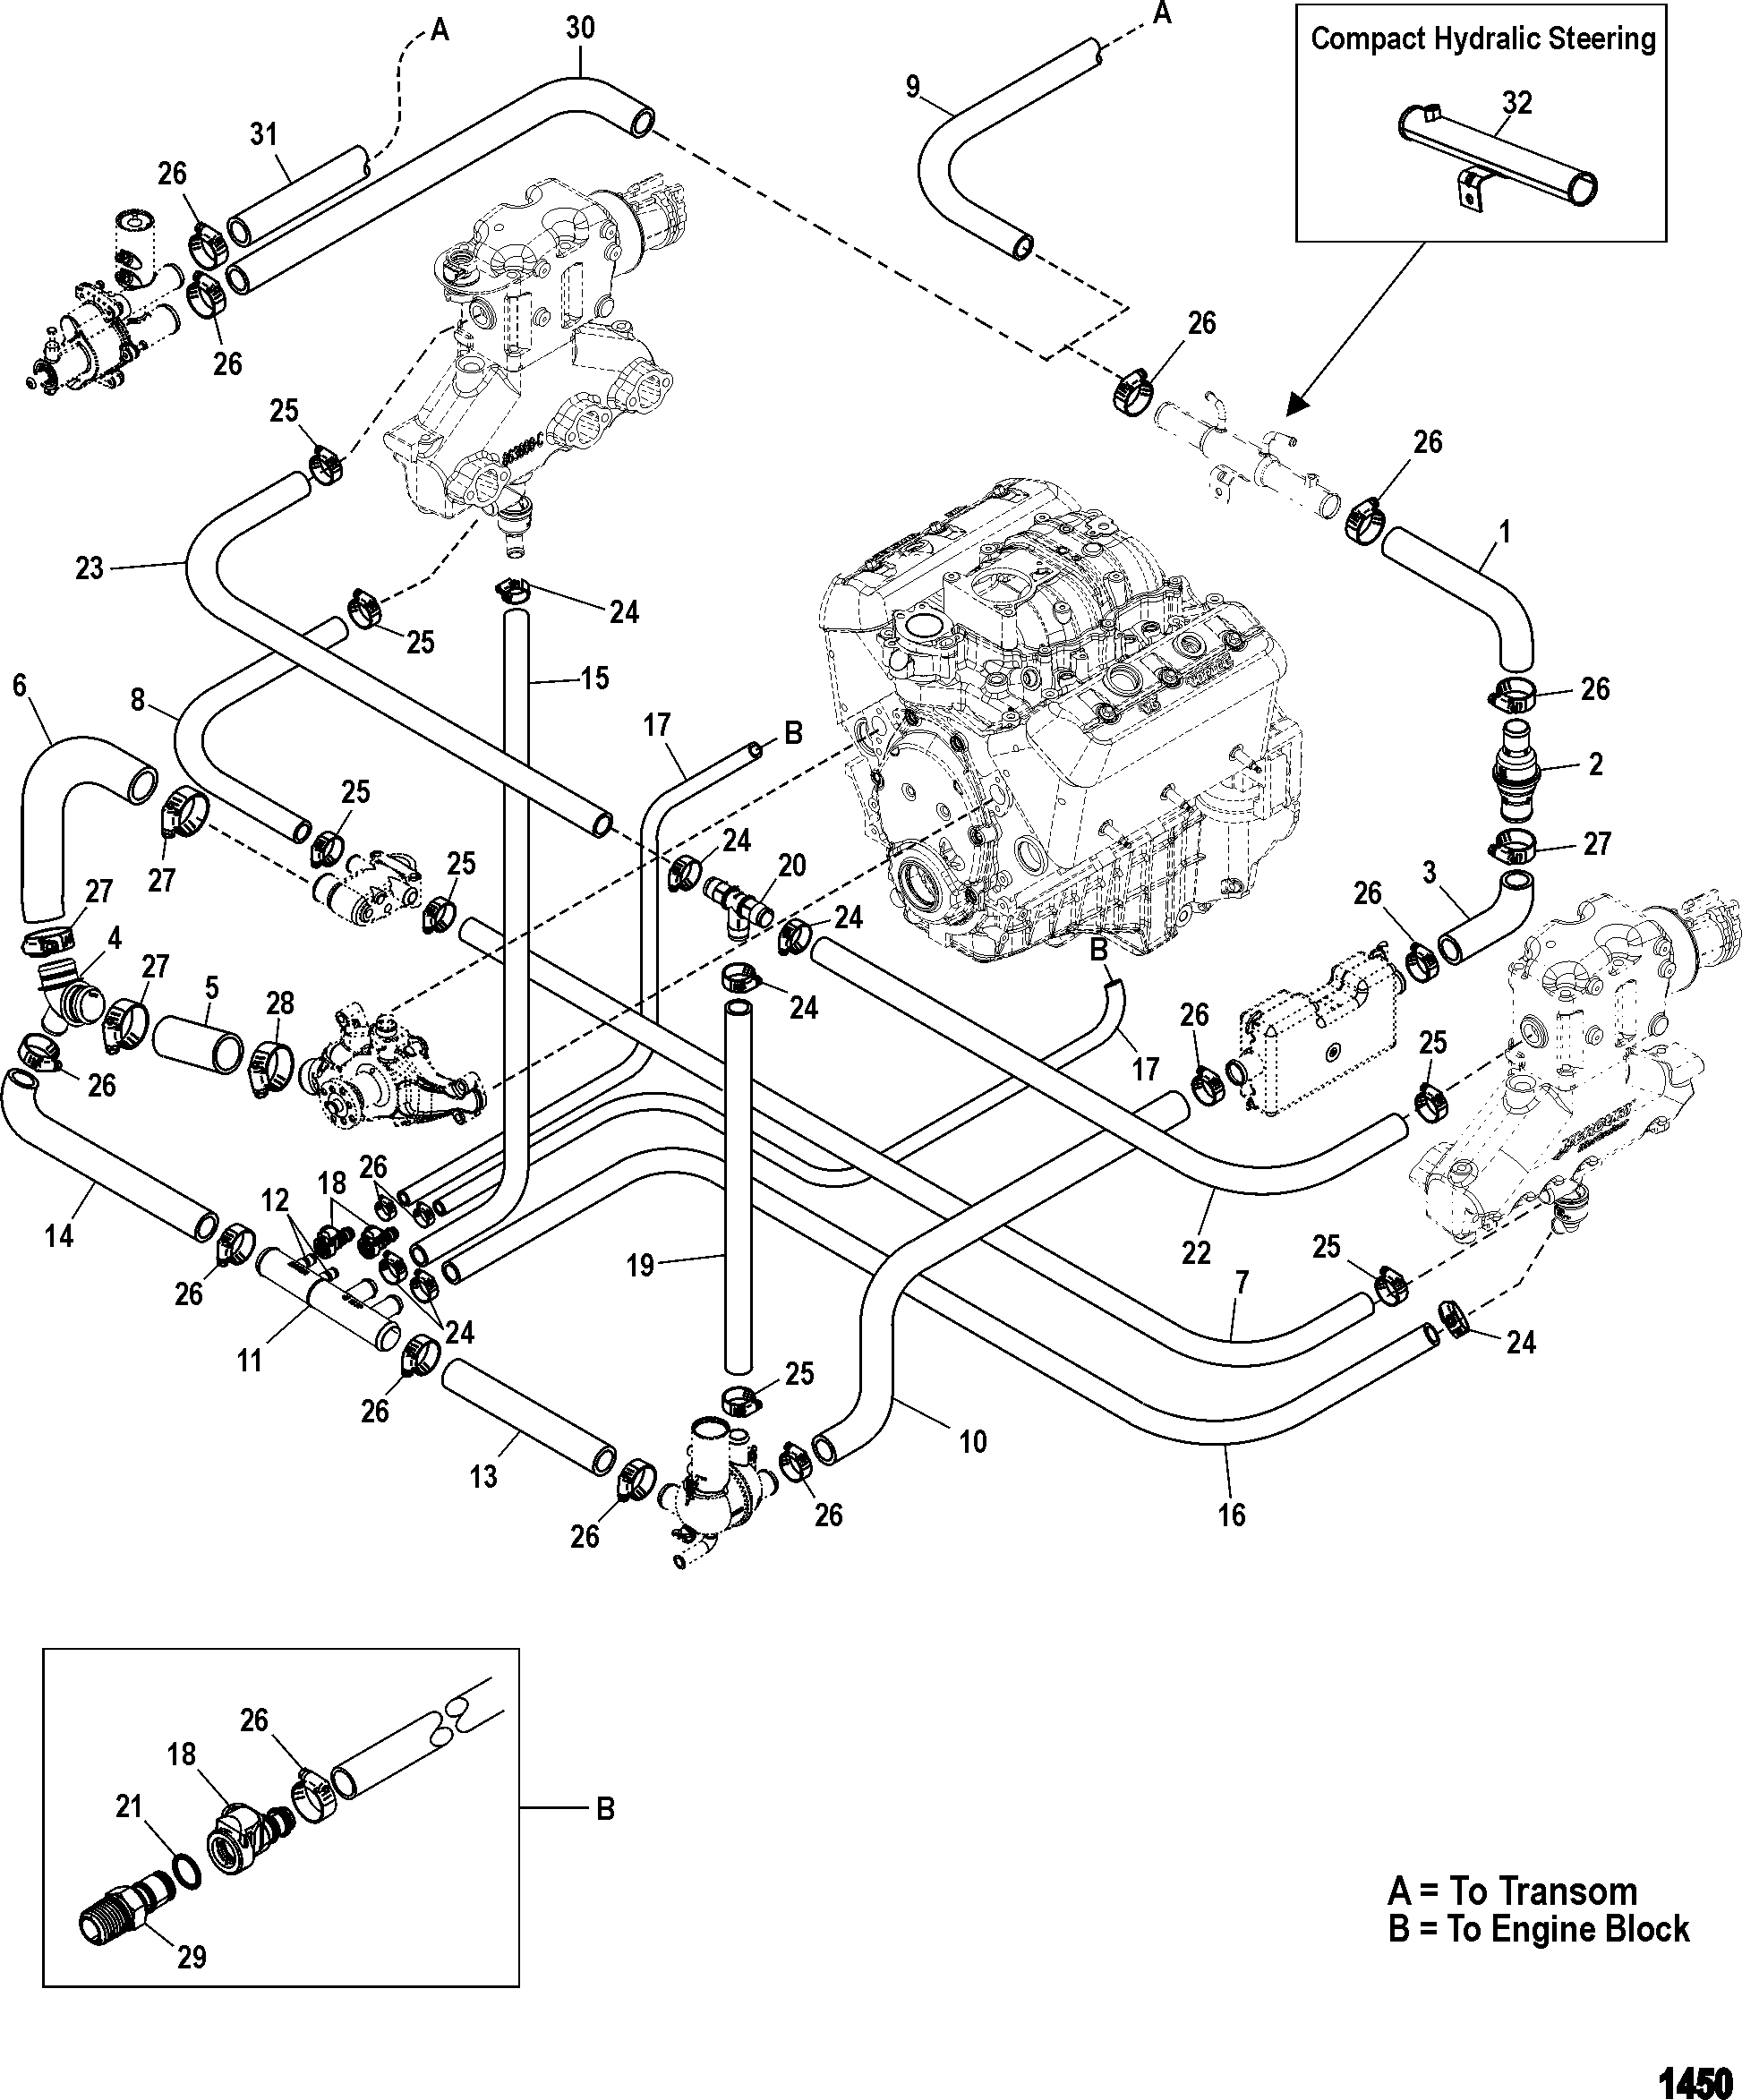 standard cooling system easy drain for mercruiser 4 3l mpi 2001 3400 Grand  AM 2003 pontiac grand am engine parts diagram